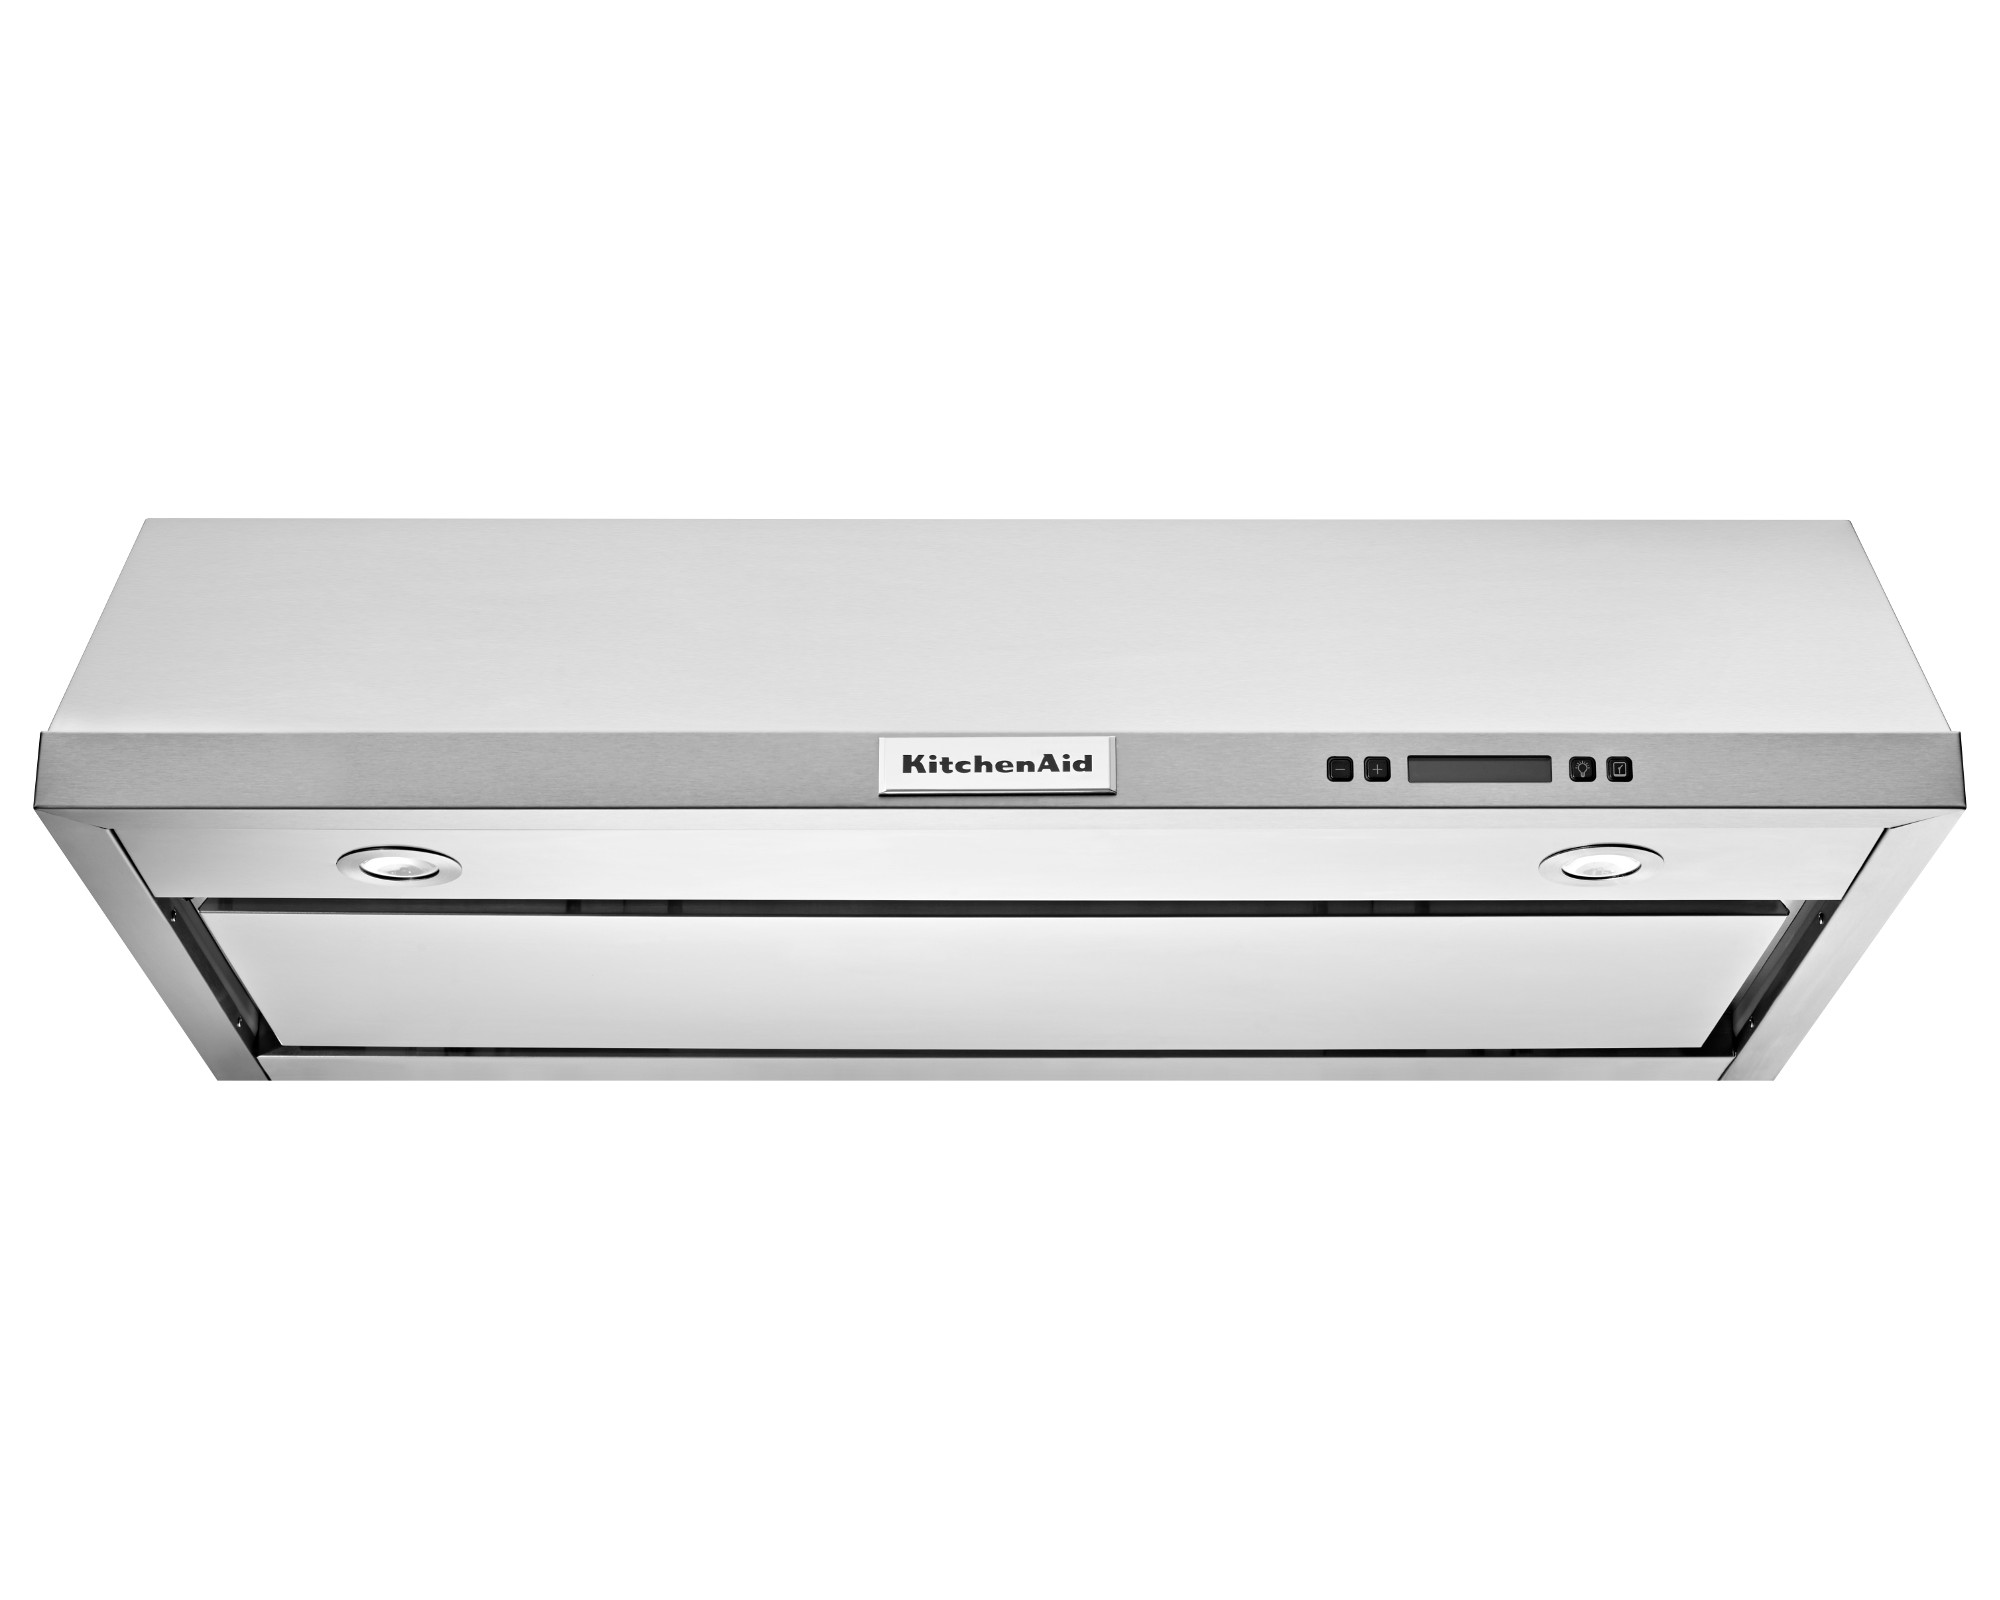 KitchenAid KVUB606DSS 36 Under Cabinet Range Hood w/ 4 Speeds - Stainless Steel